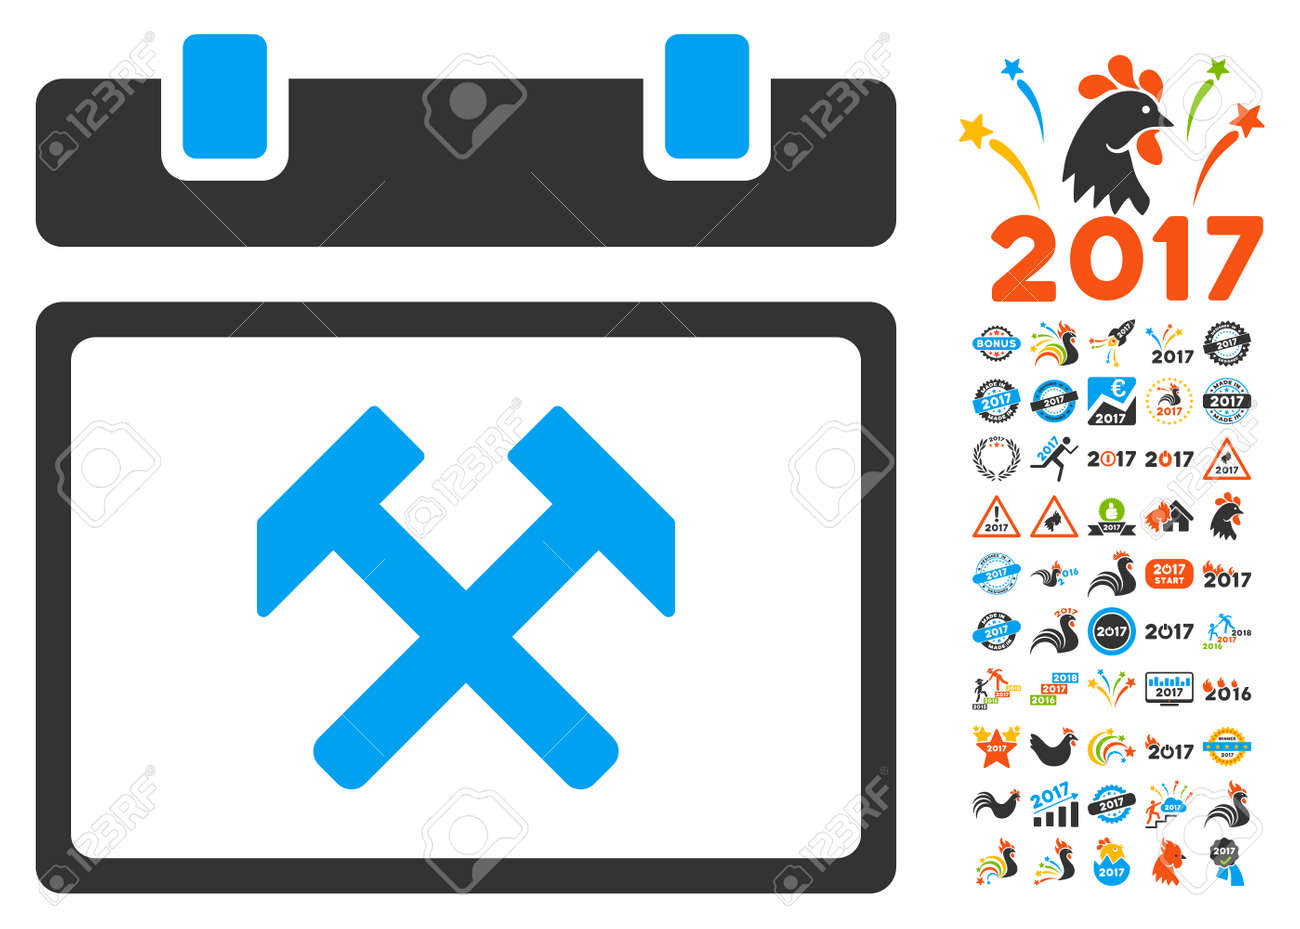 working calendar day icon with bonus 2017 new year graphic icons royalty free cliparts vectors and stock illustration image 66484100 123rf com